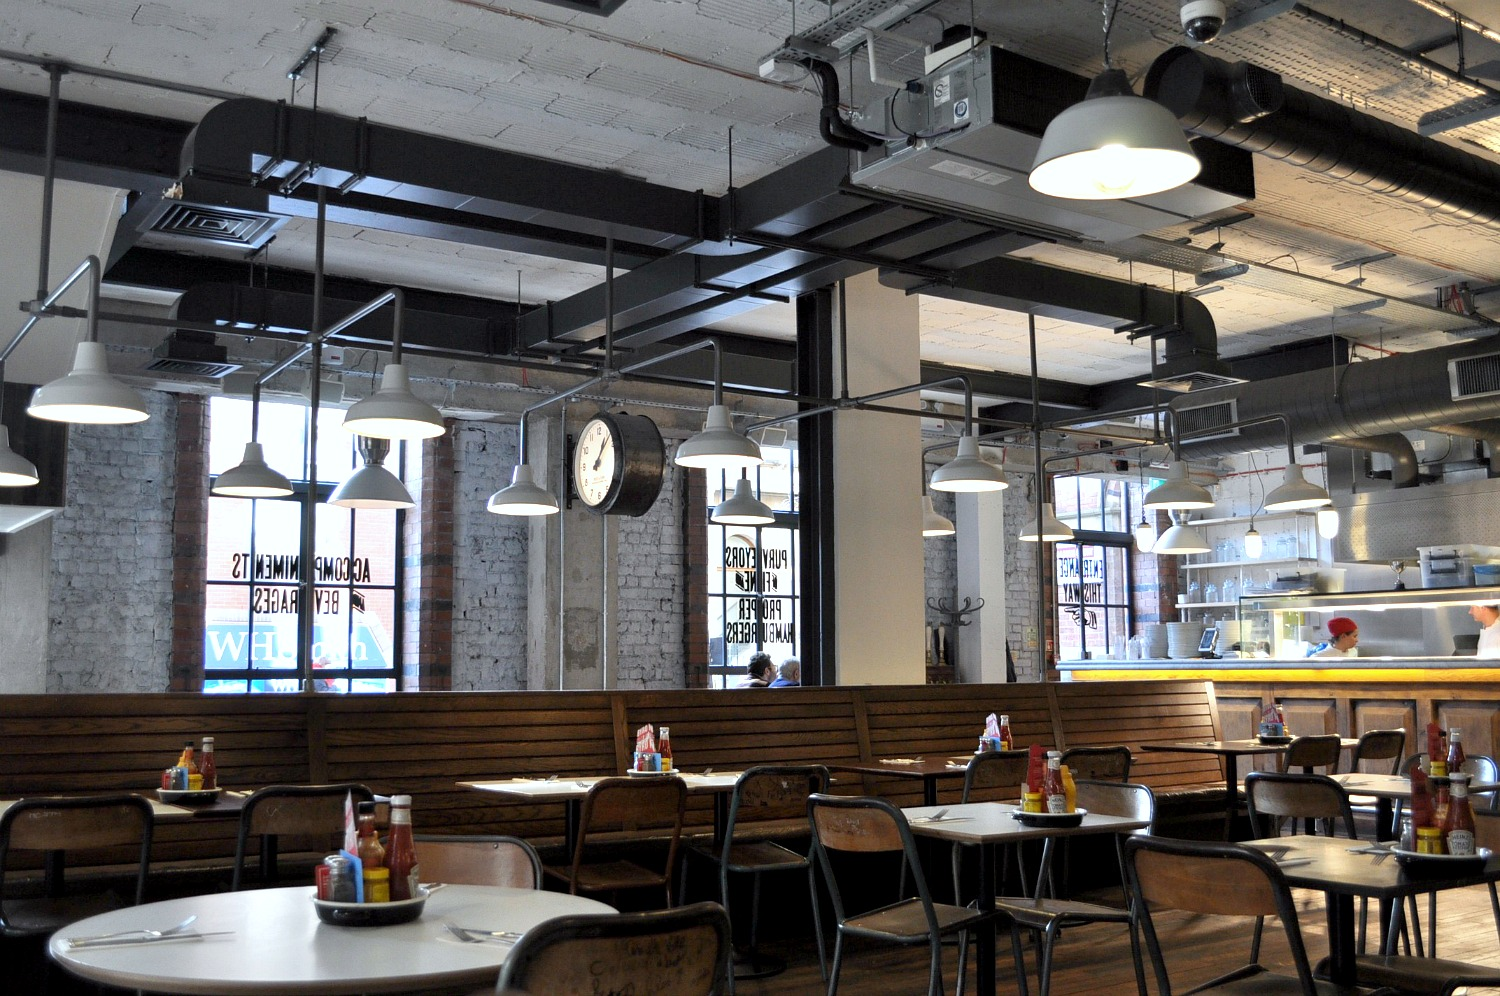 Insdustrial interior inspiration and byron burger